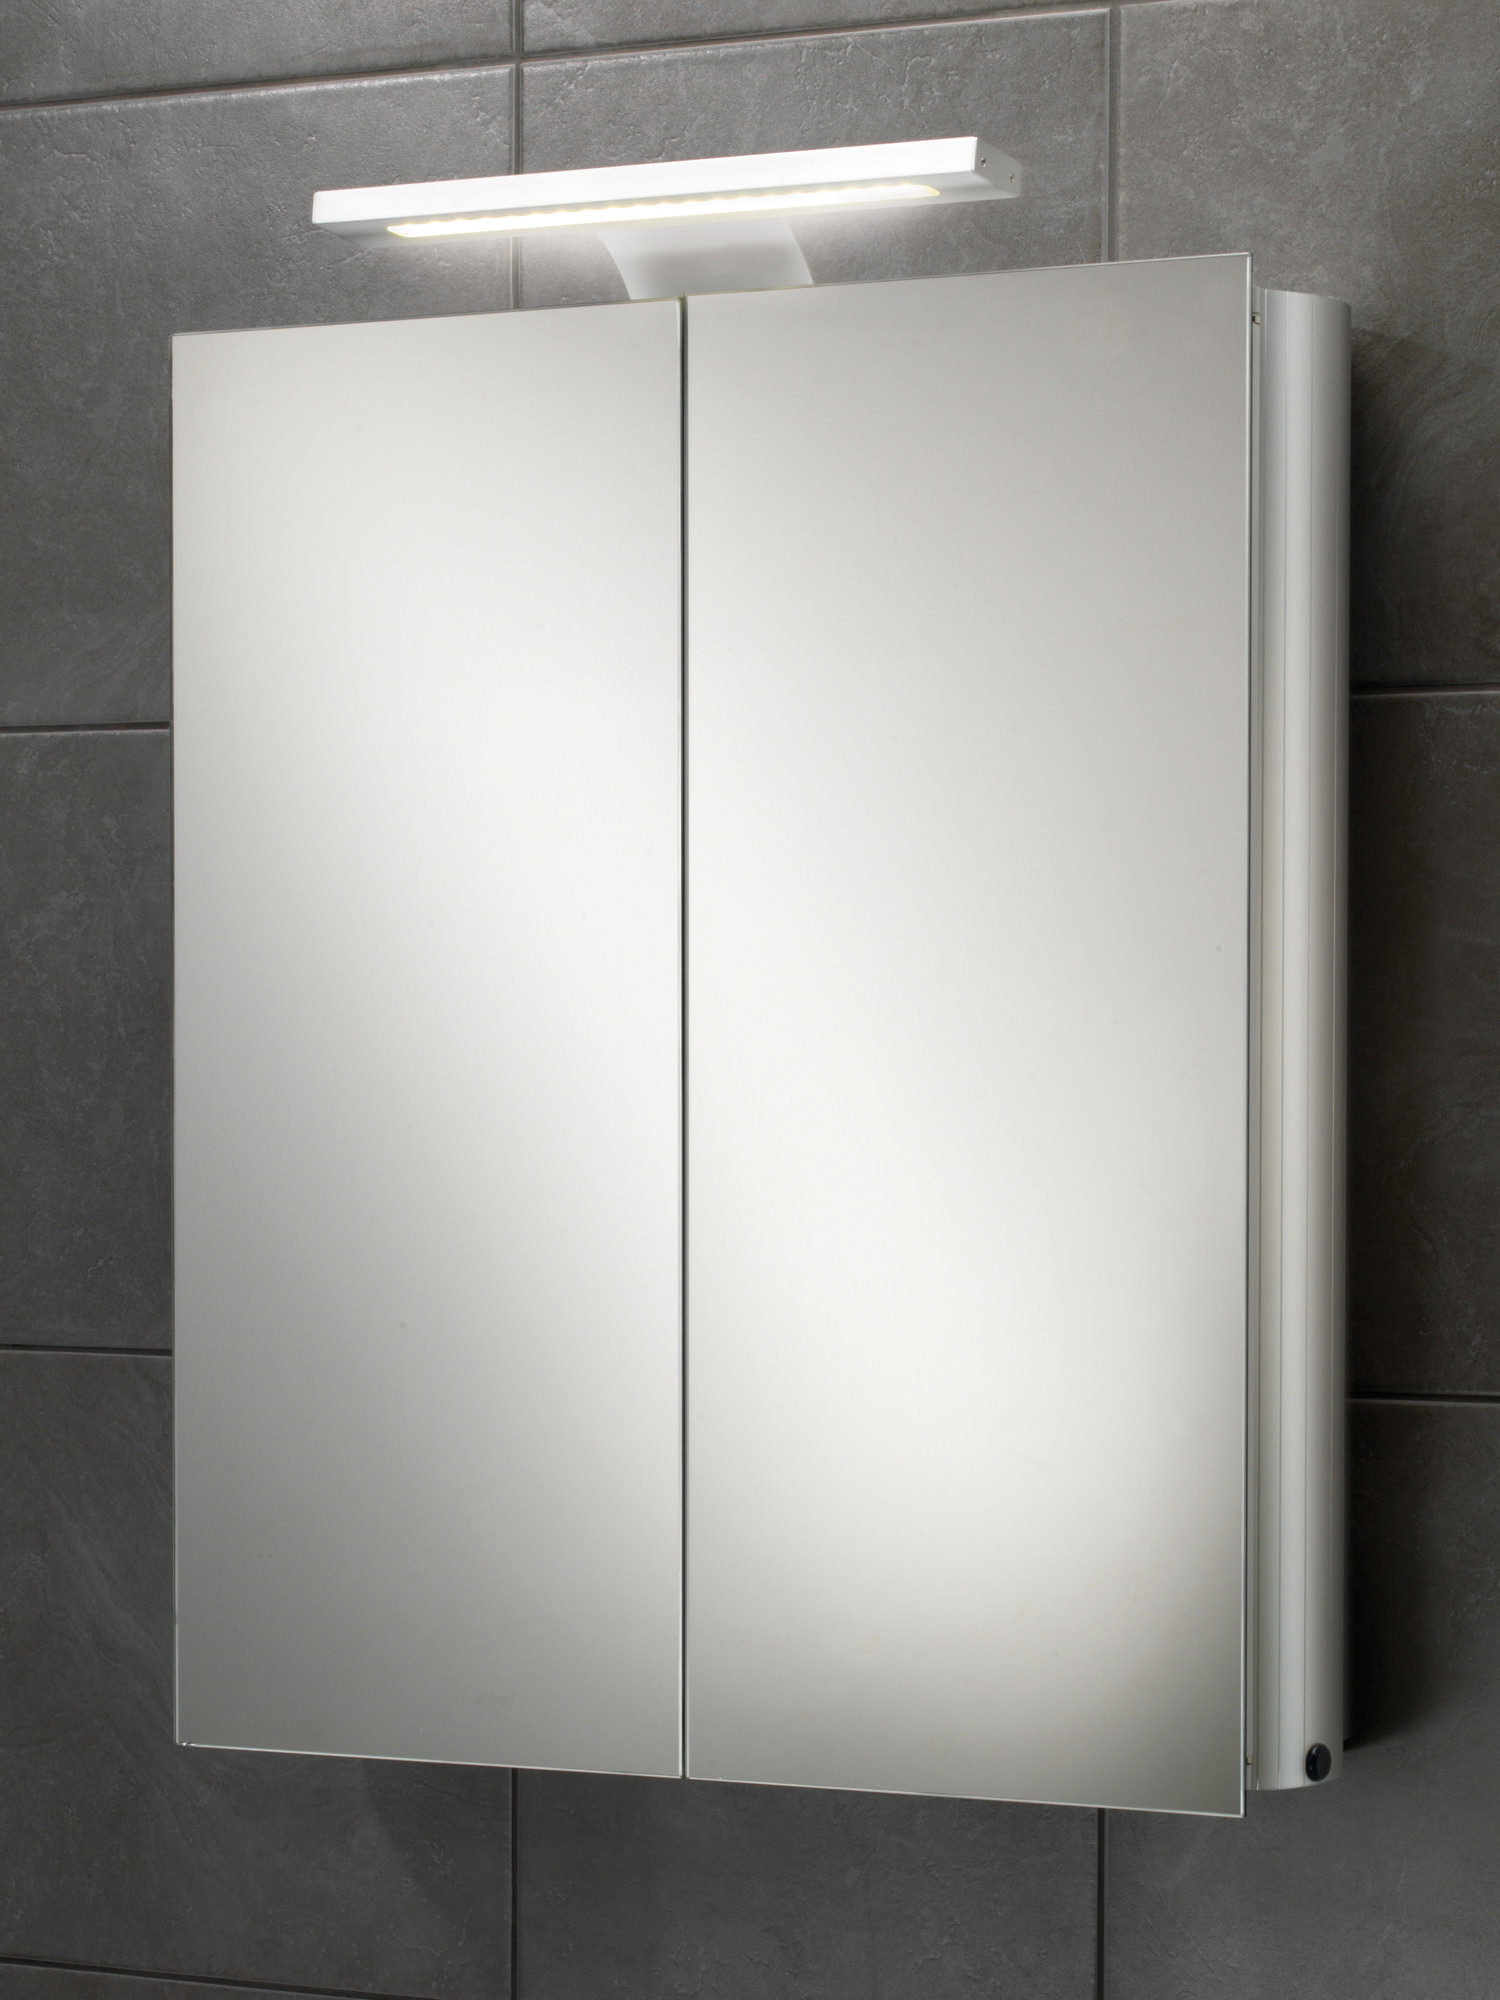 Mirrored Bathroom Cupboard Hib Atomic Led Illuminated Double Door Aluminium Mirrored